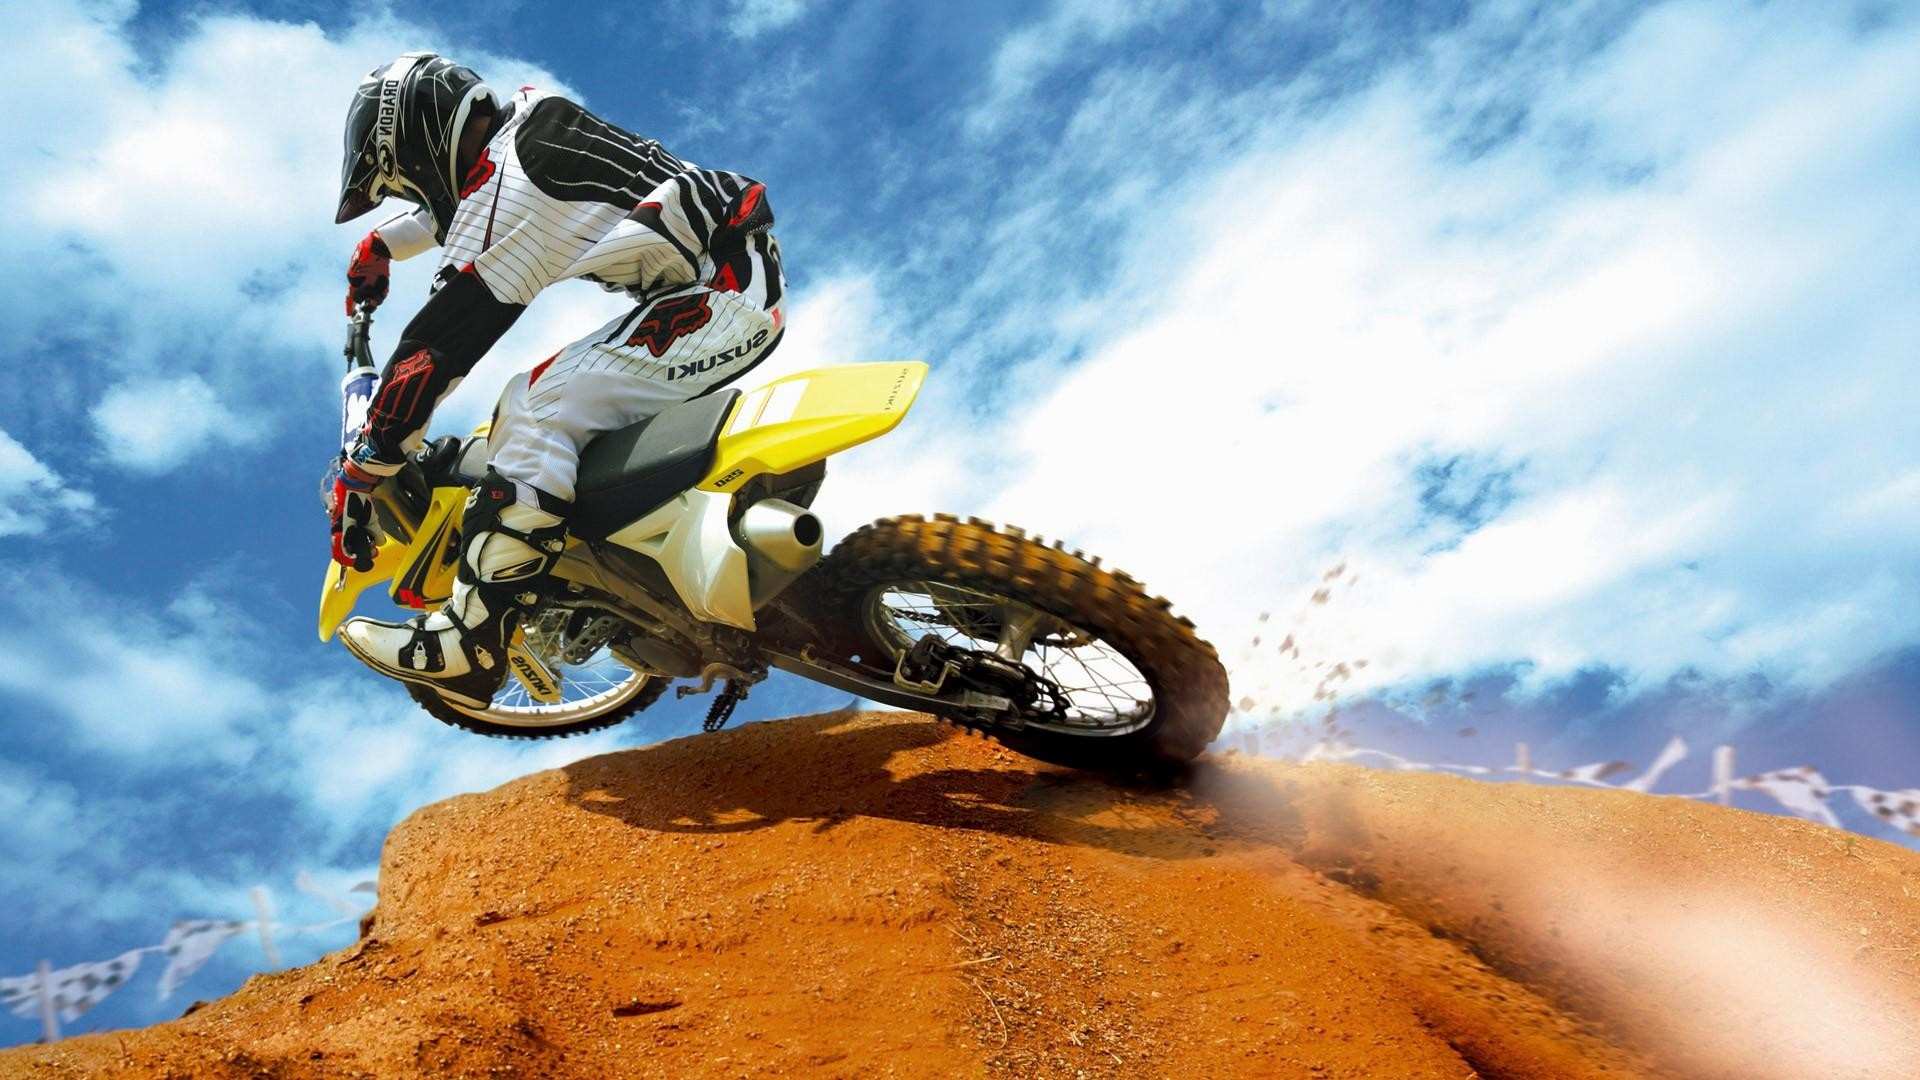 clouds. Available wallpaper Sizes of Dirt Bike Wallpaper